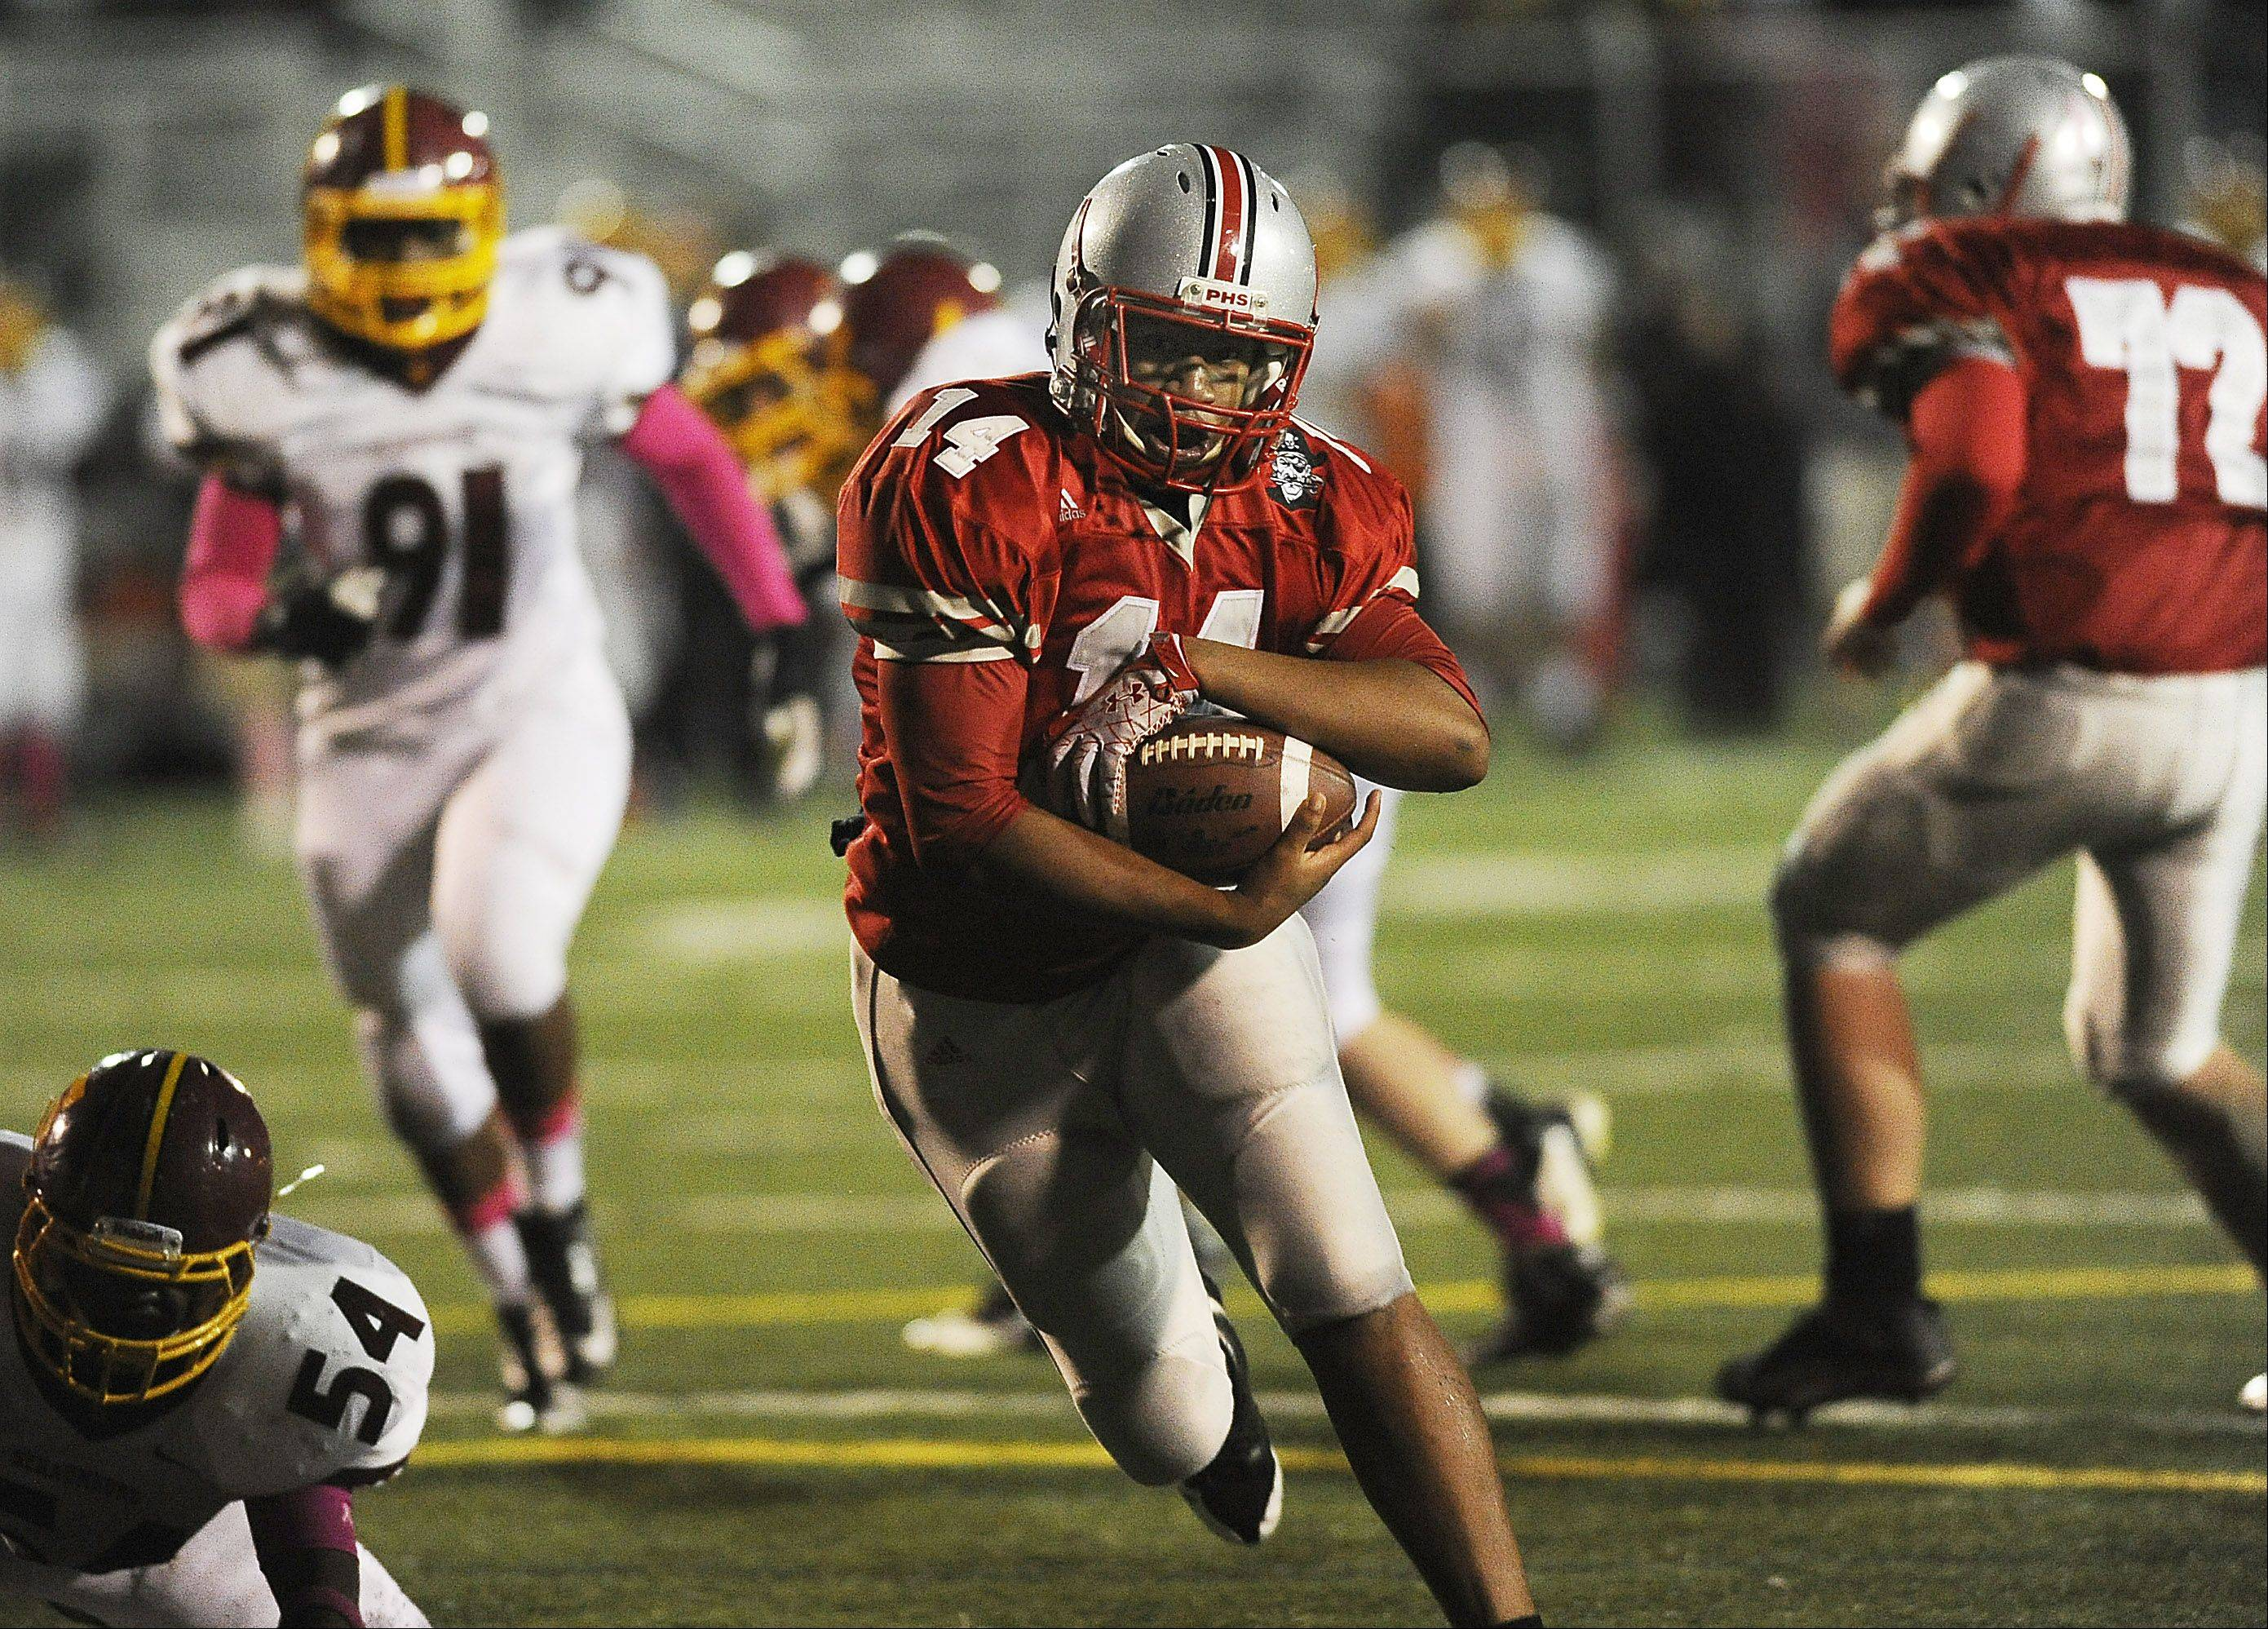 Palatine backup quarterback James Pittman sprints for a fourth-quarter touchdown Friday night in the Pirates' 51-18 victory over Schaumburg. If both teams win their first-round Class 8A playoff matchups, a second-round rematch awaits.